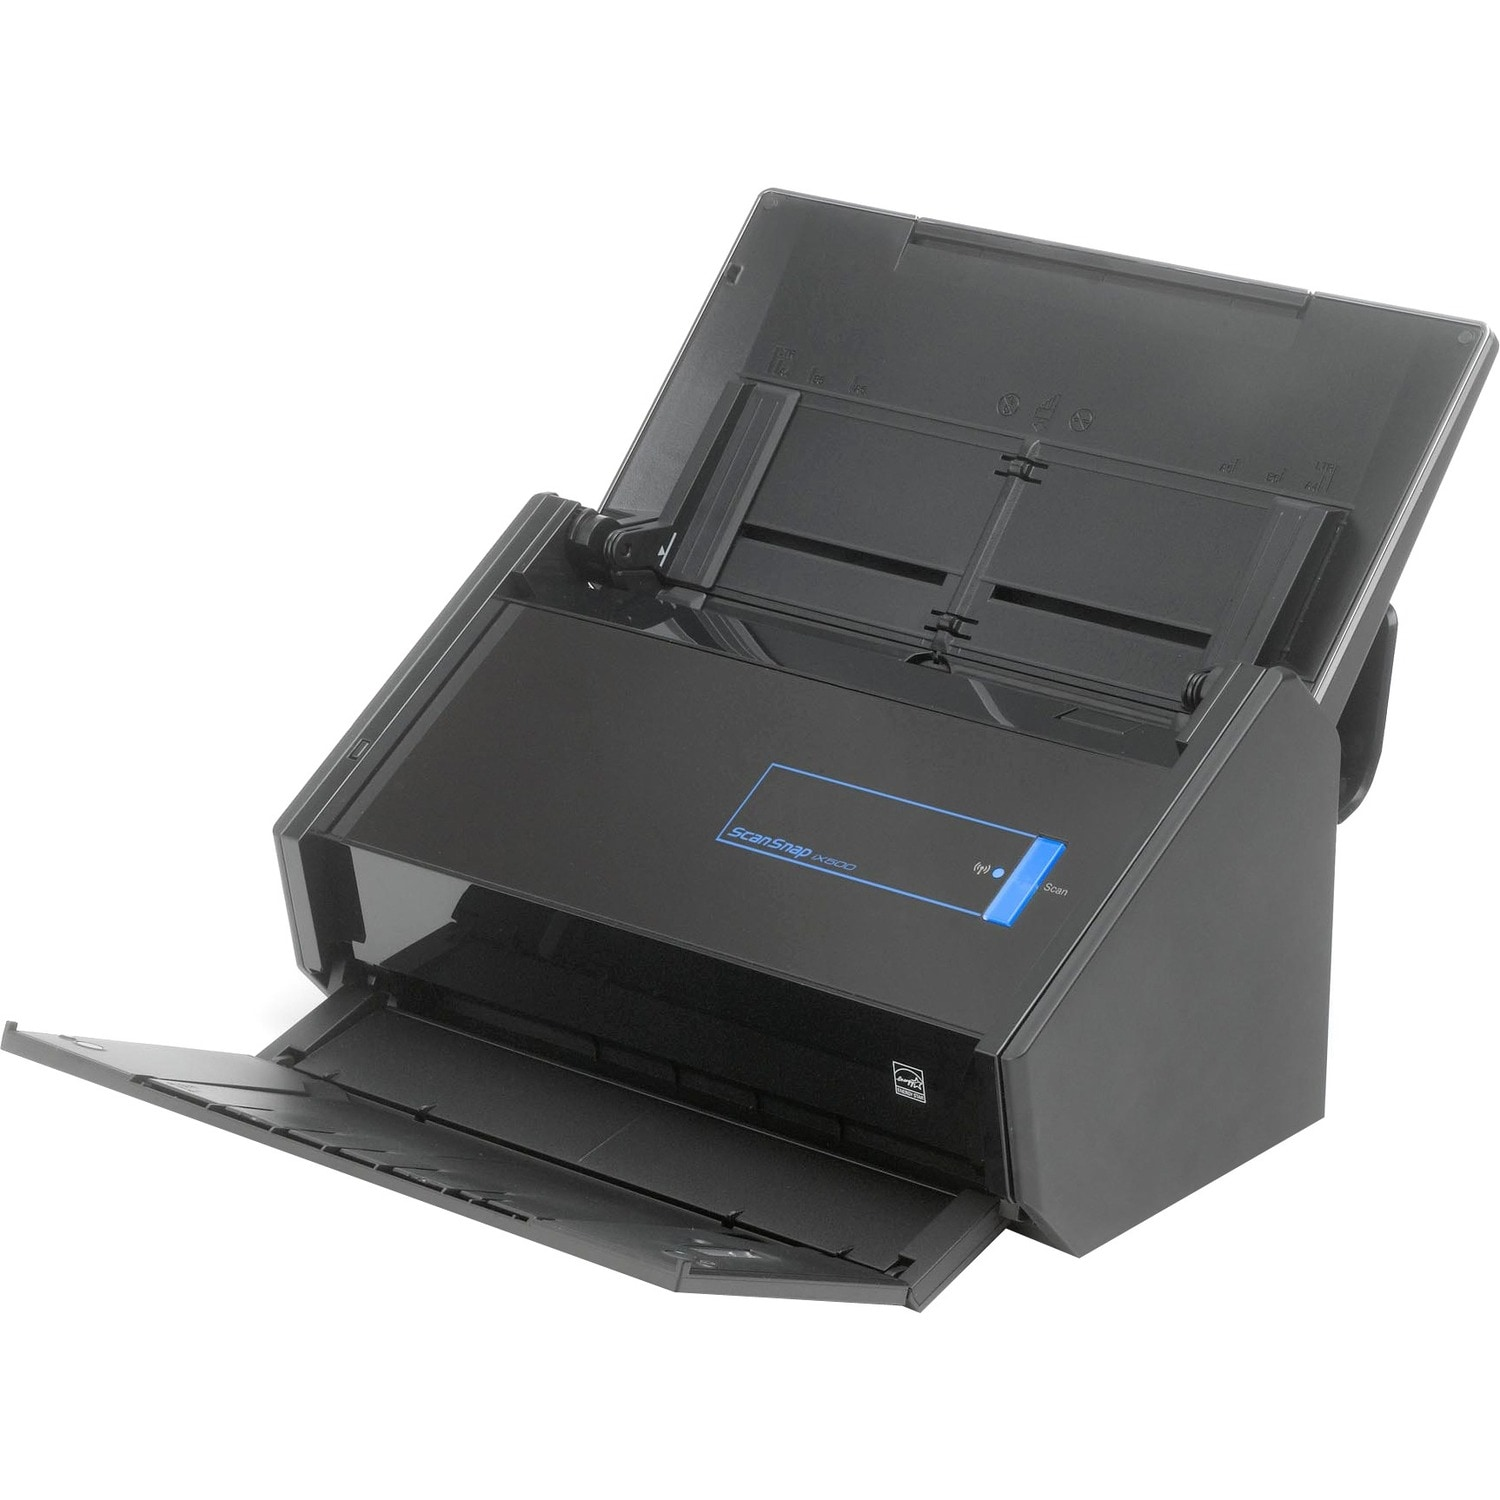 Fujitsu ScanSnap iX500 Sheetfed Scanner - 600 dpi Optical - Thumbnail 0